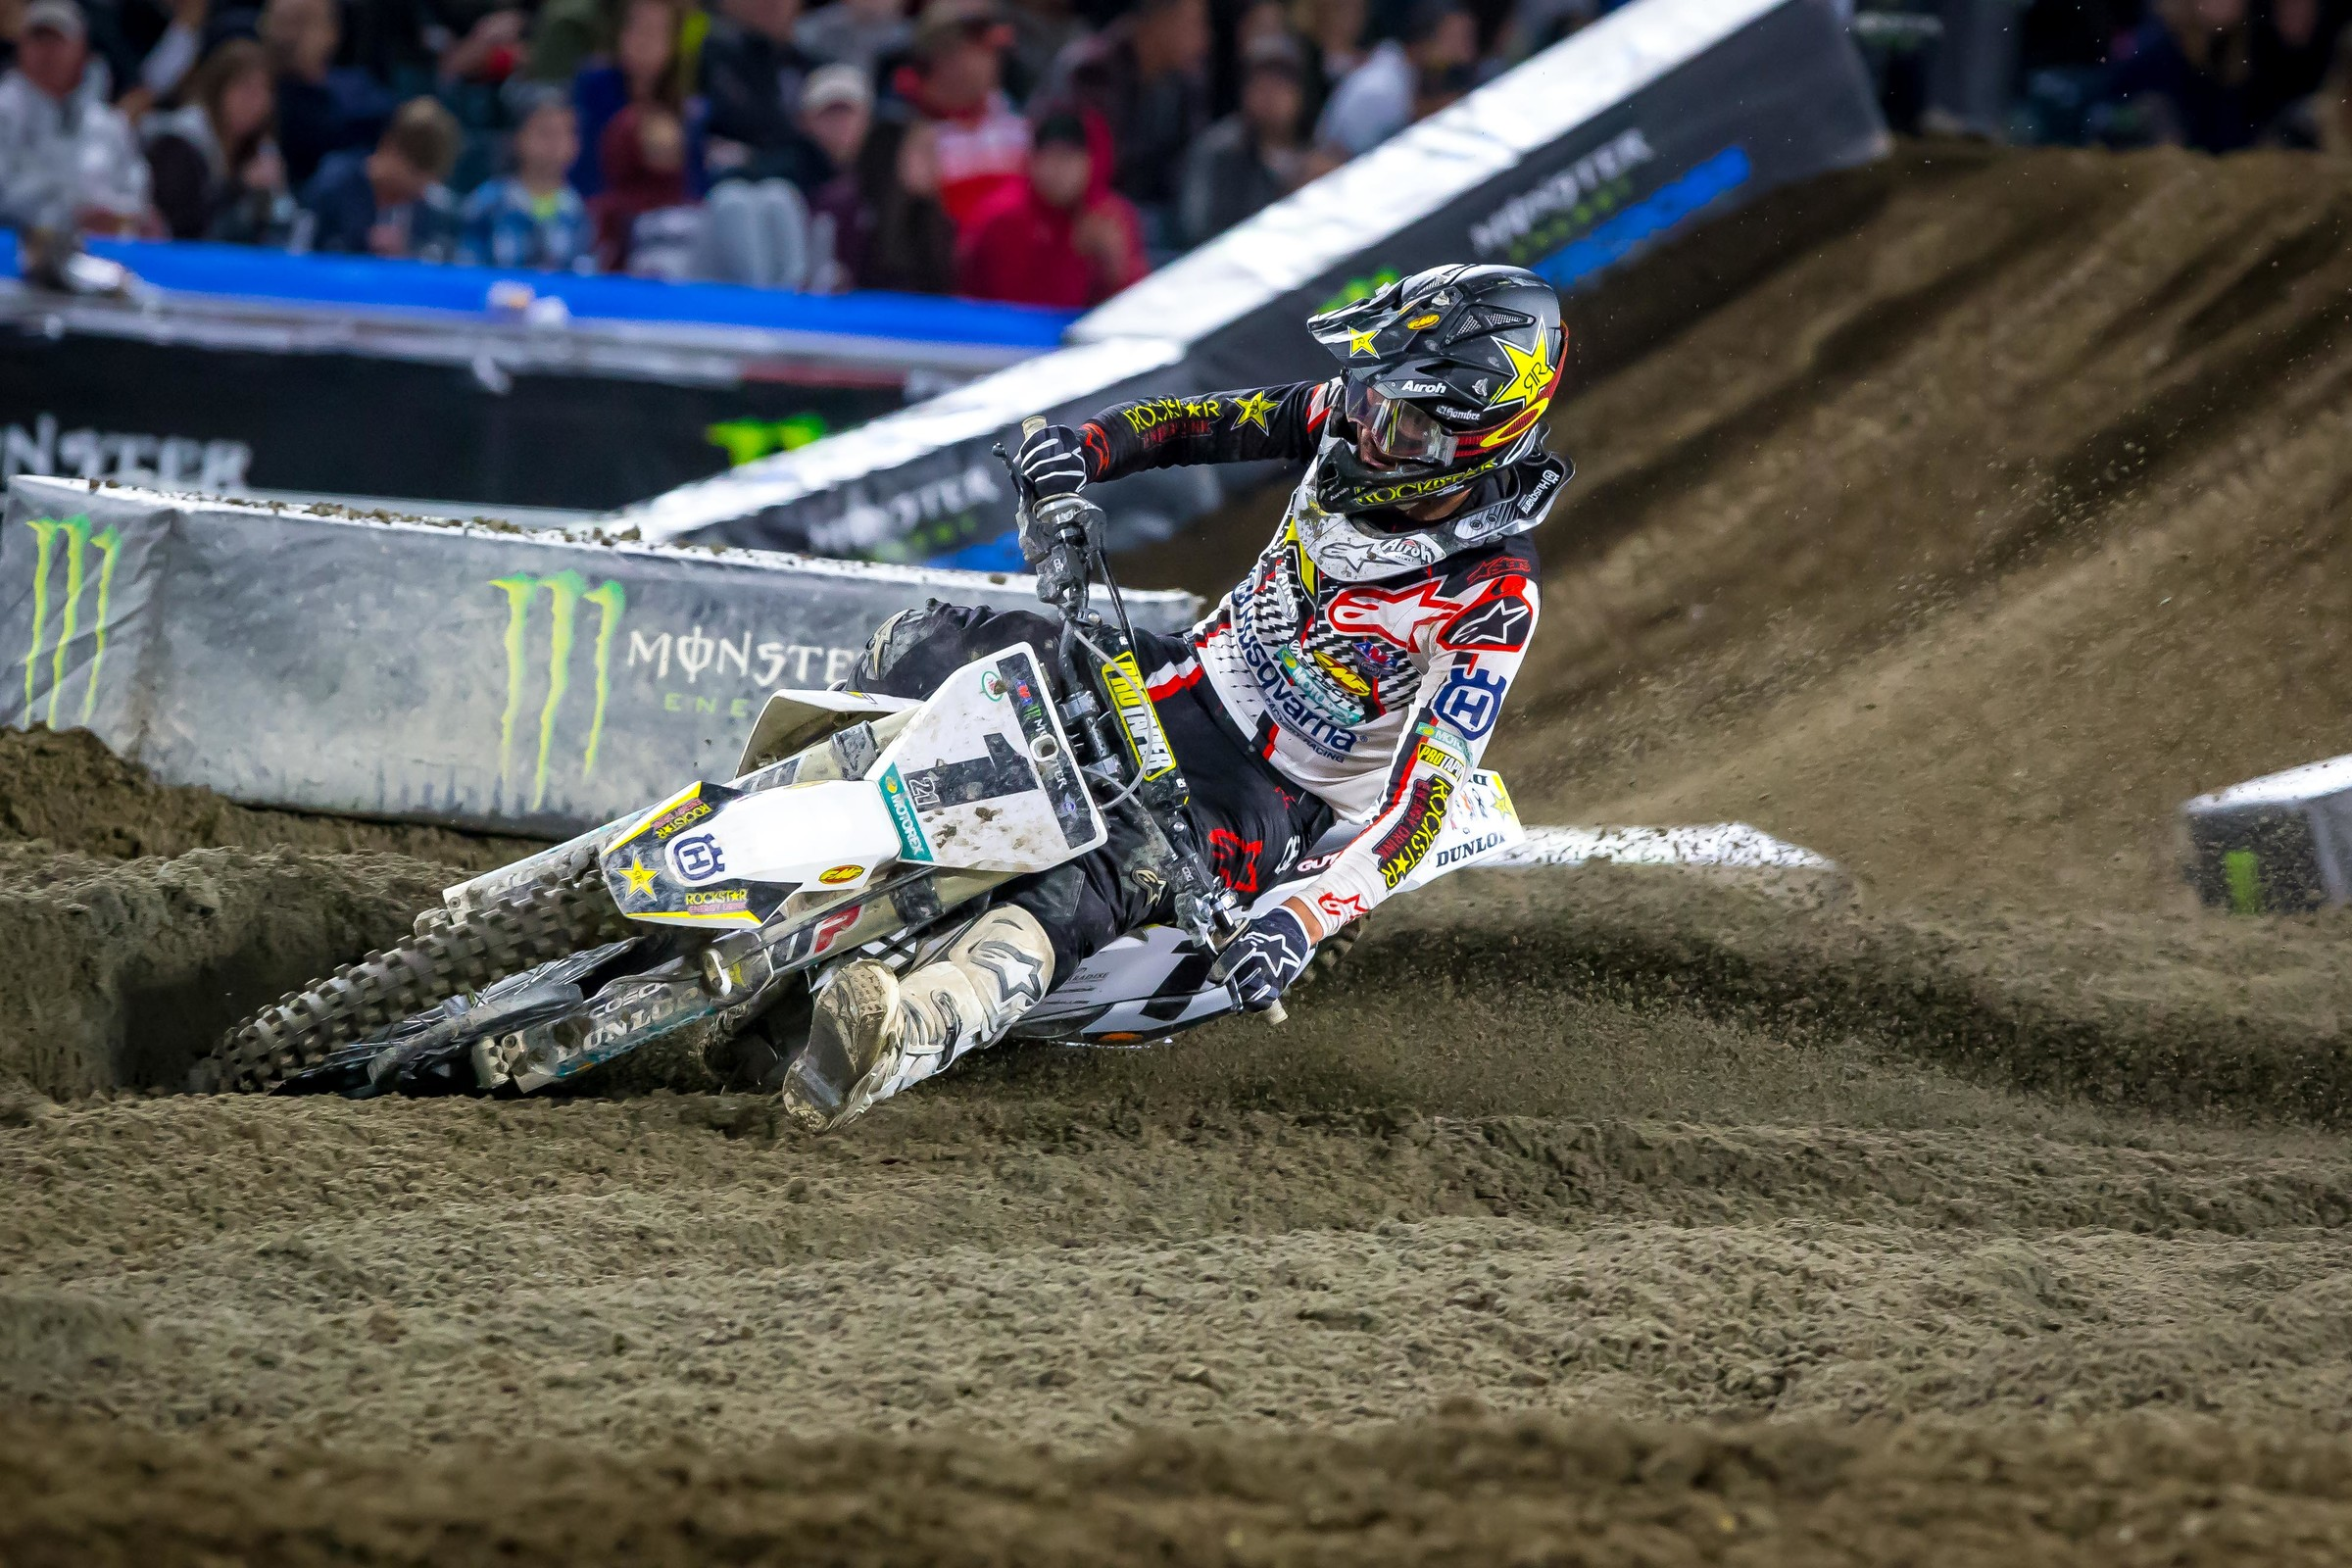 For example, Jason Anderson had some good laps but also some bad ones, and when combined with an off track excursion in race three, was ninth overall.